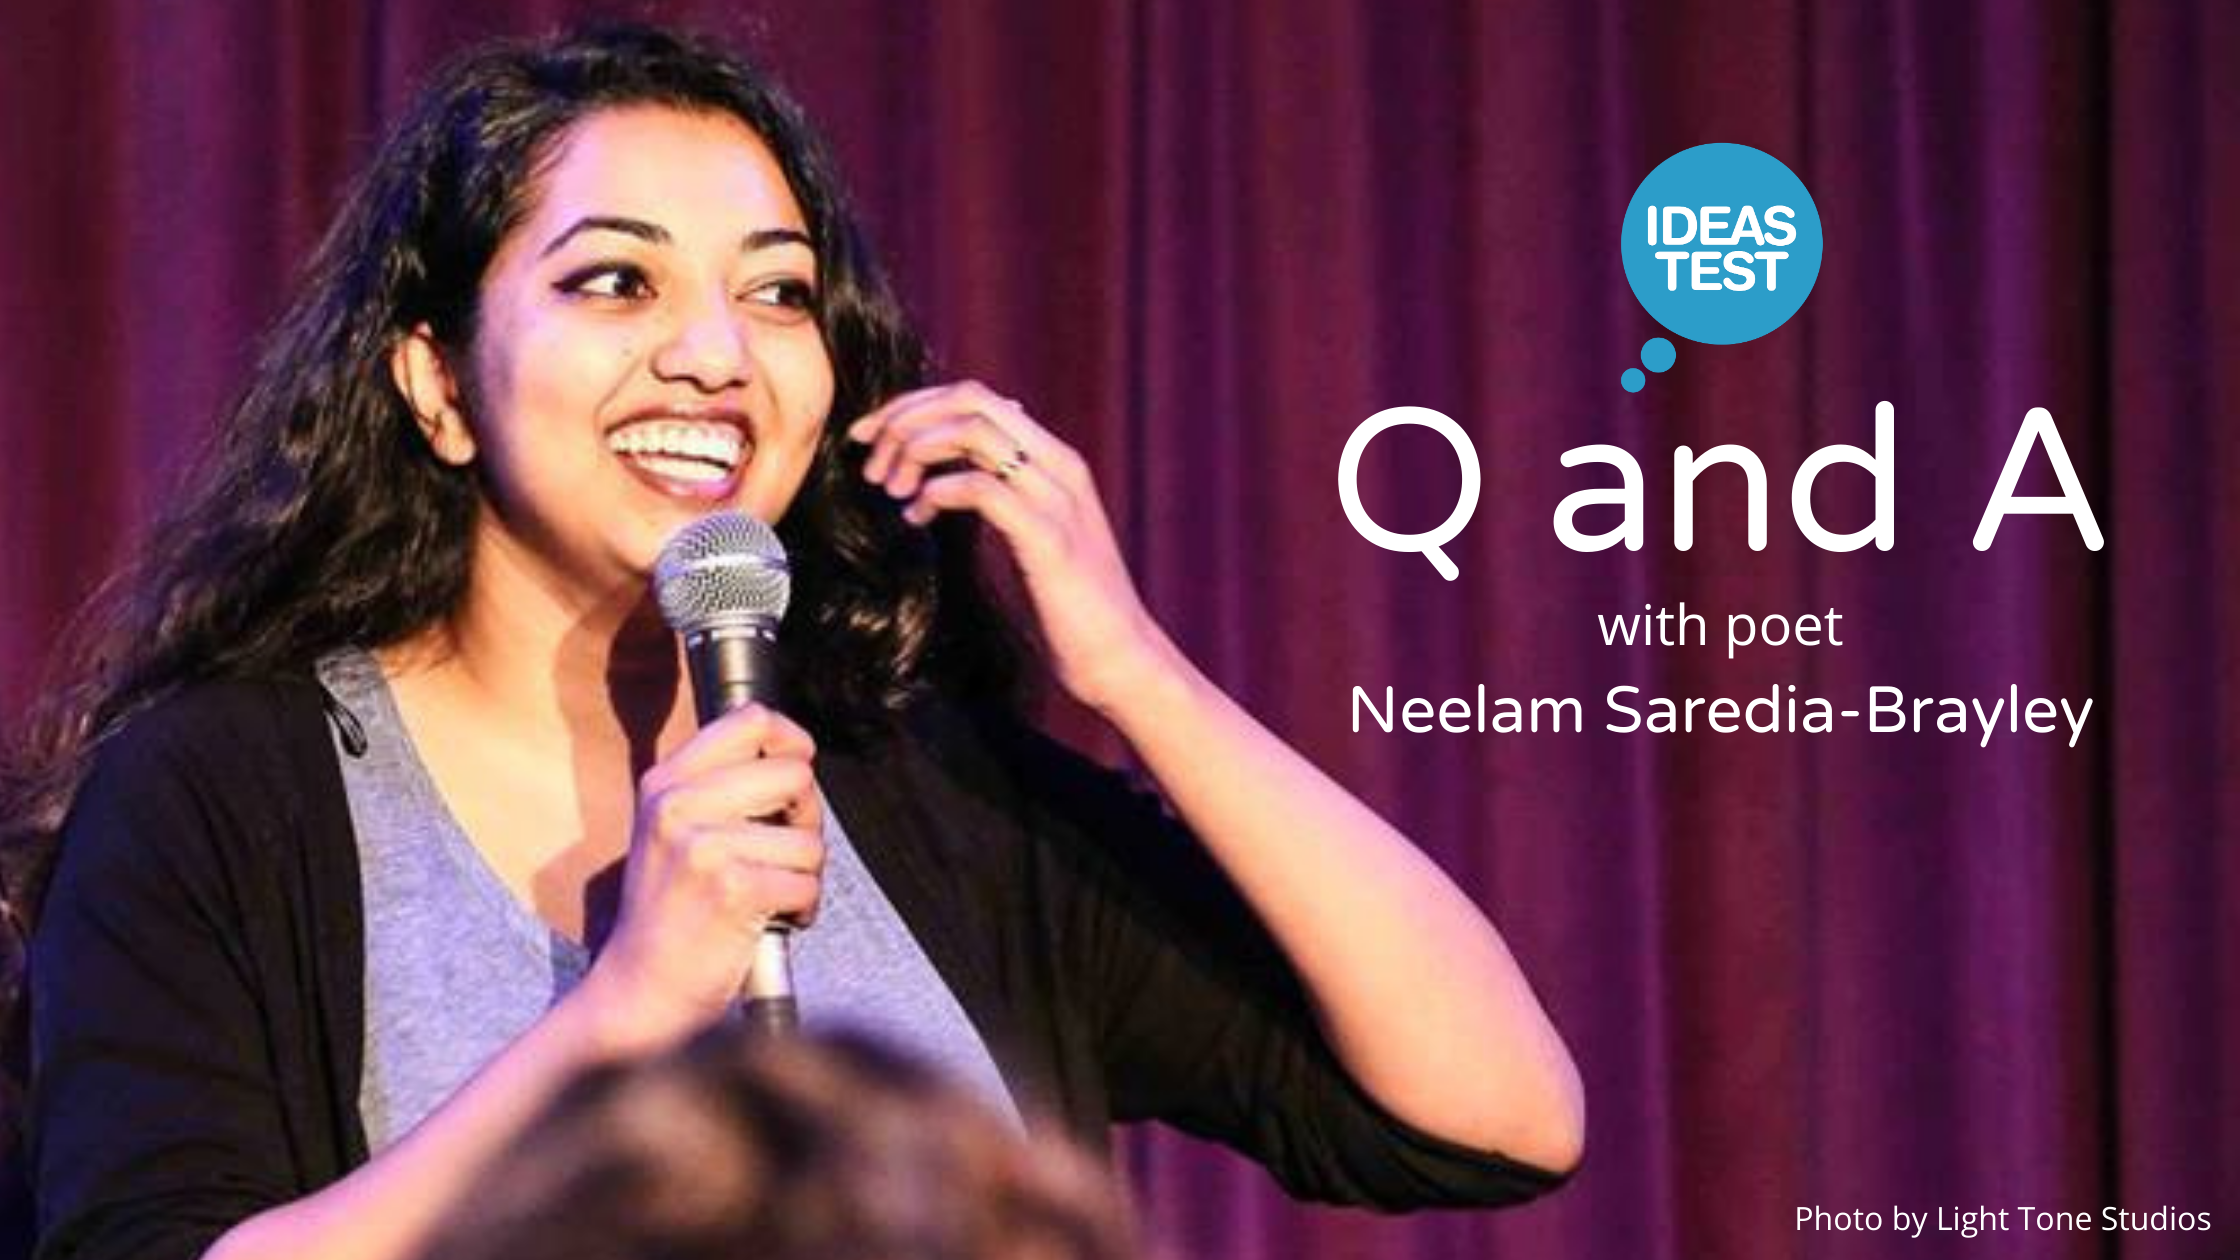 Photo of poet Neelam Saredia-Brayley. Neelam is a young woman who is standing in front of a stage curtain in front of an audience. She is holding a microphone and smiling.